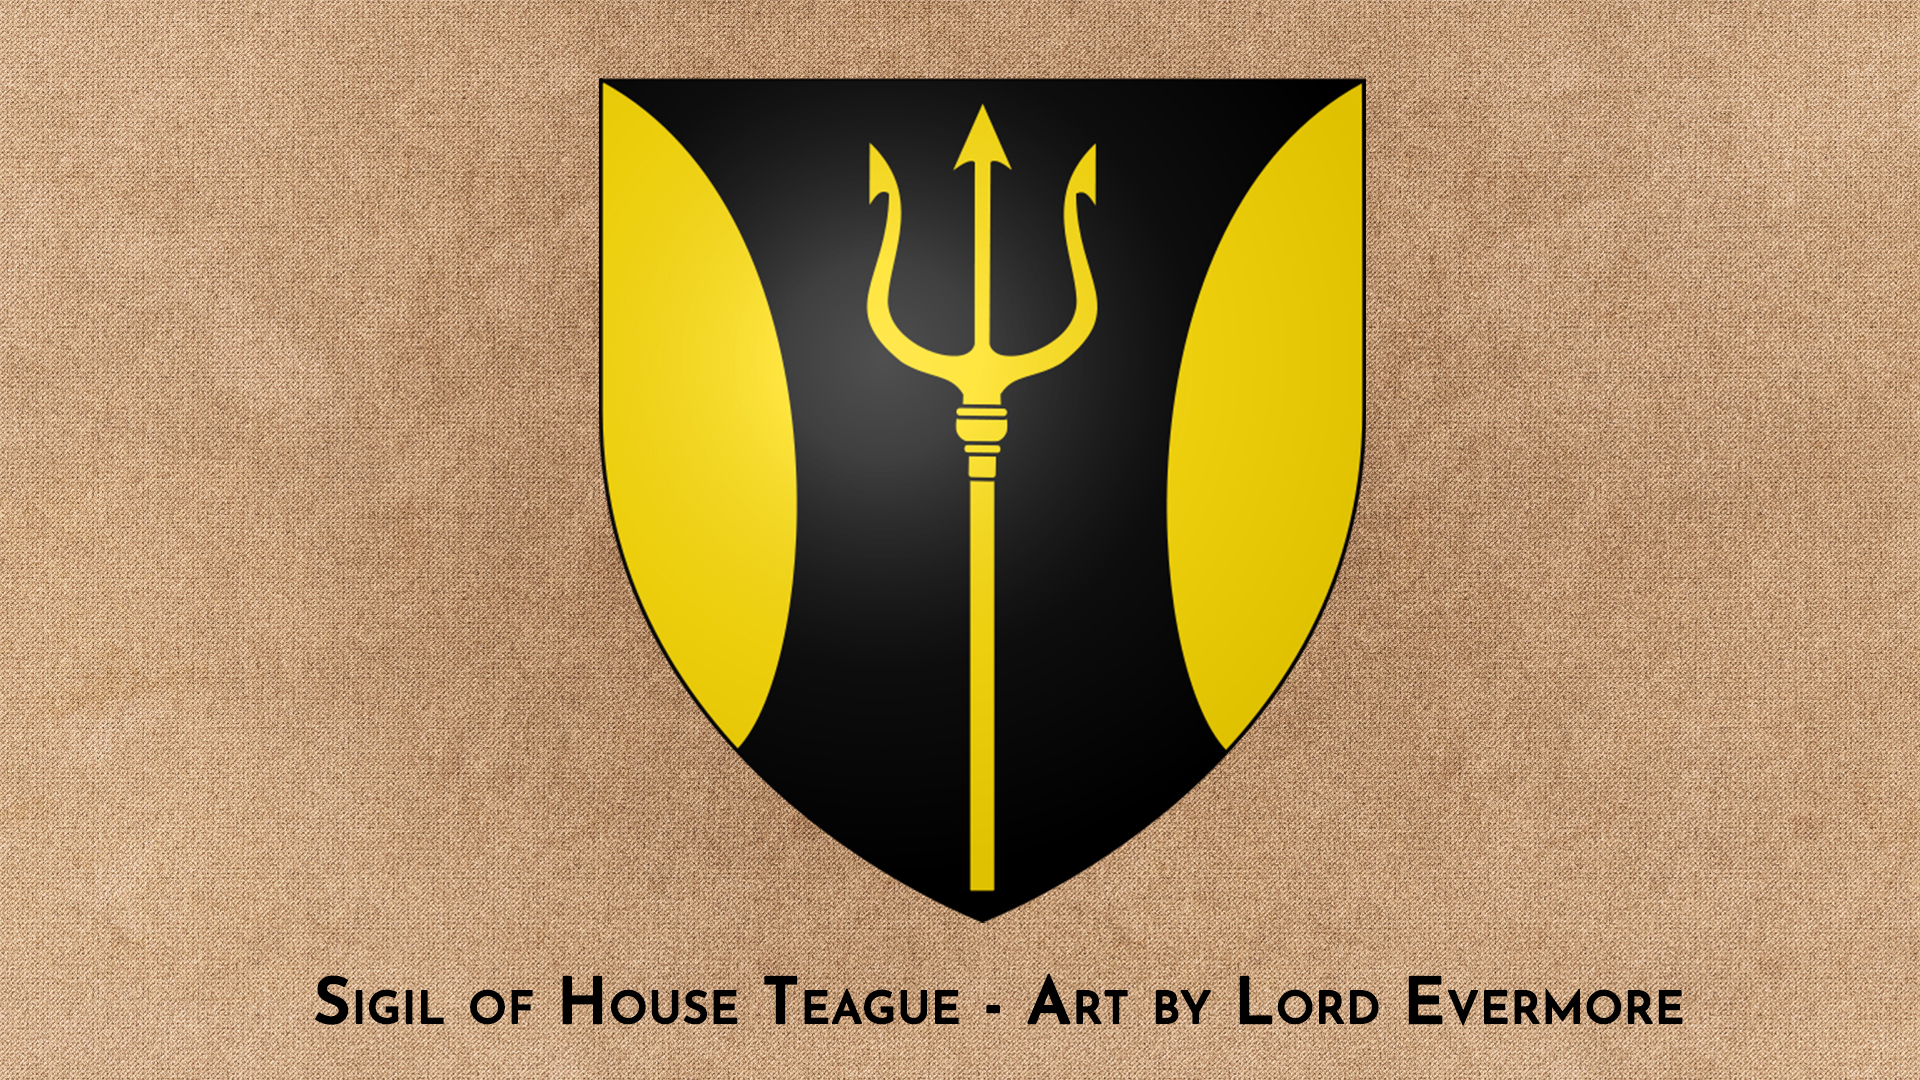 House Teague sigil by Lord Evermore